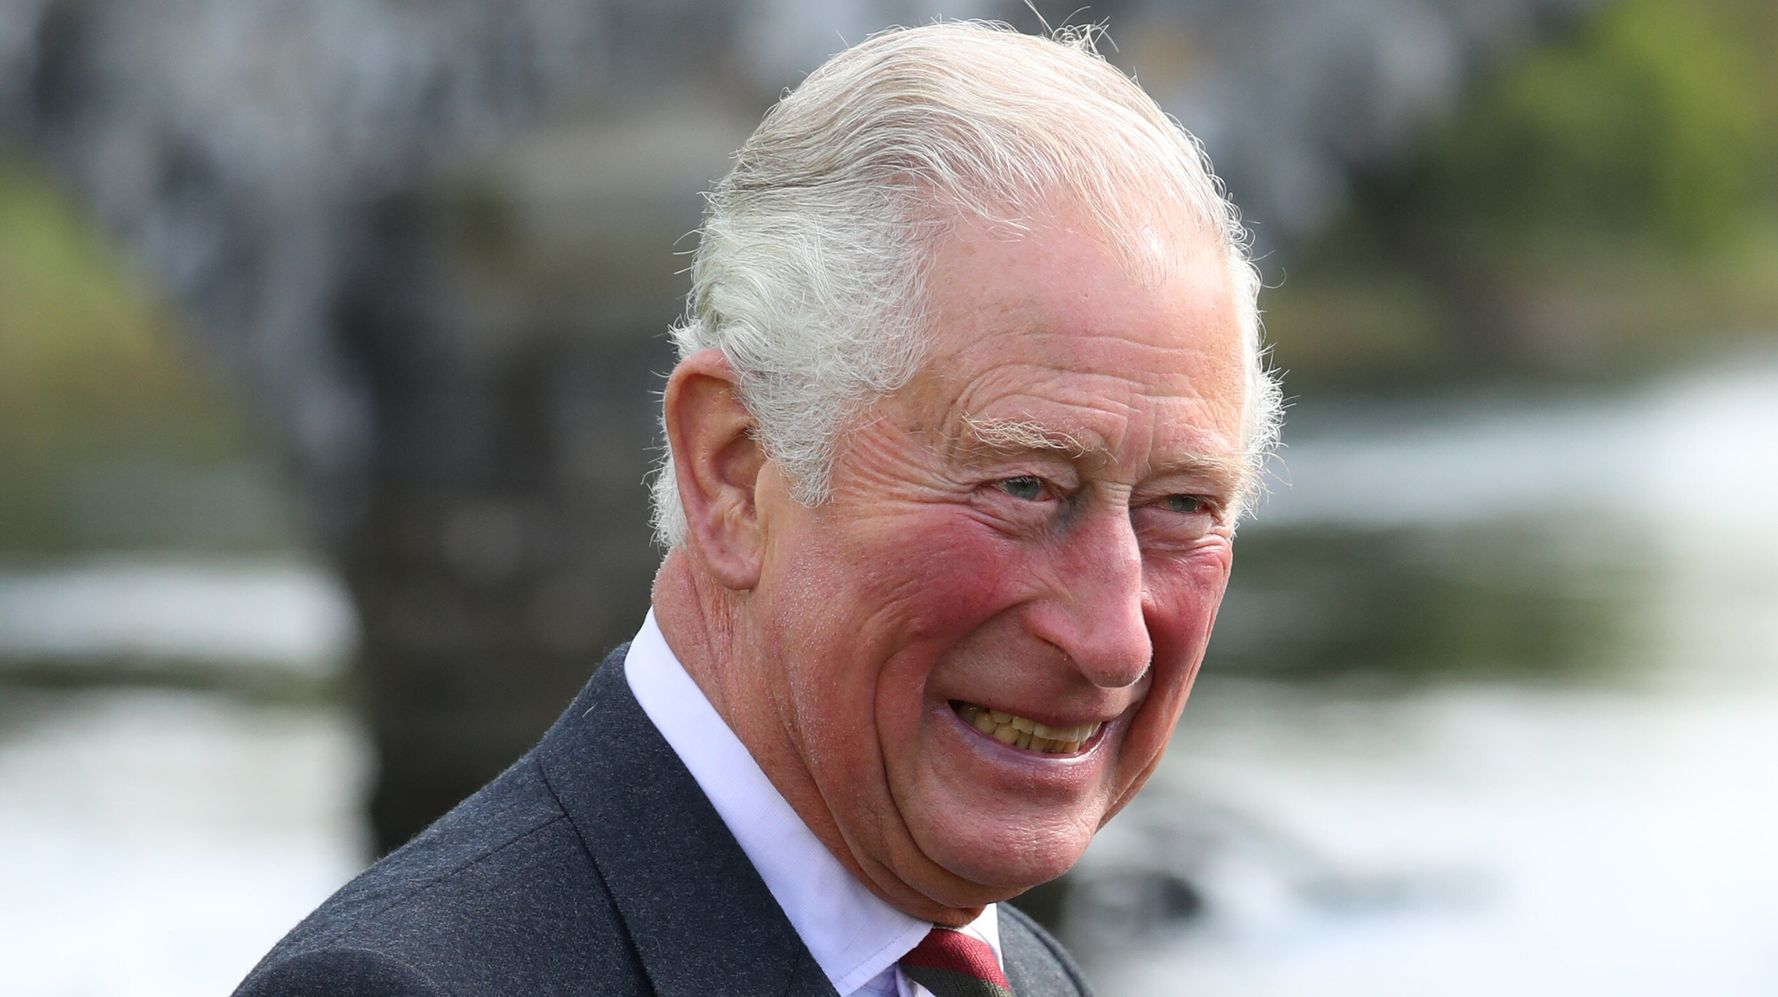 Brexit Has Inspired Prince Charles' Old School To Teach Kids How To Negotiate